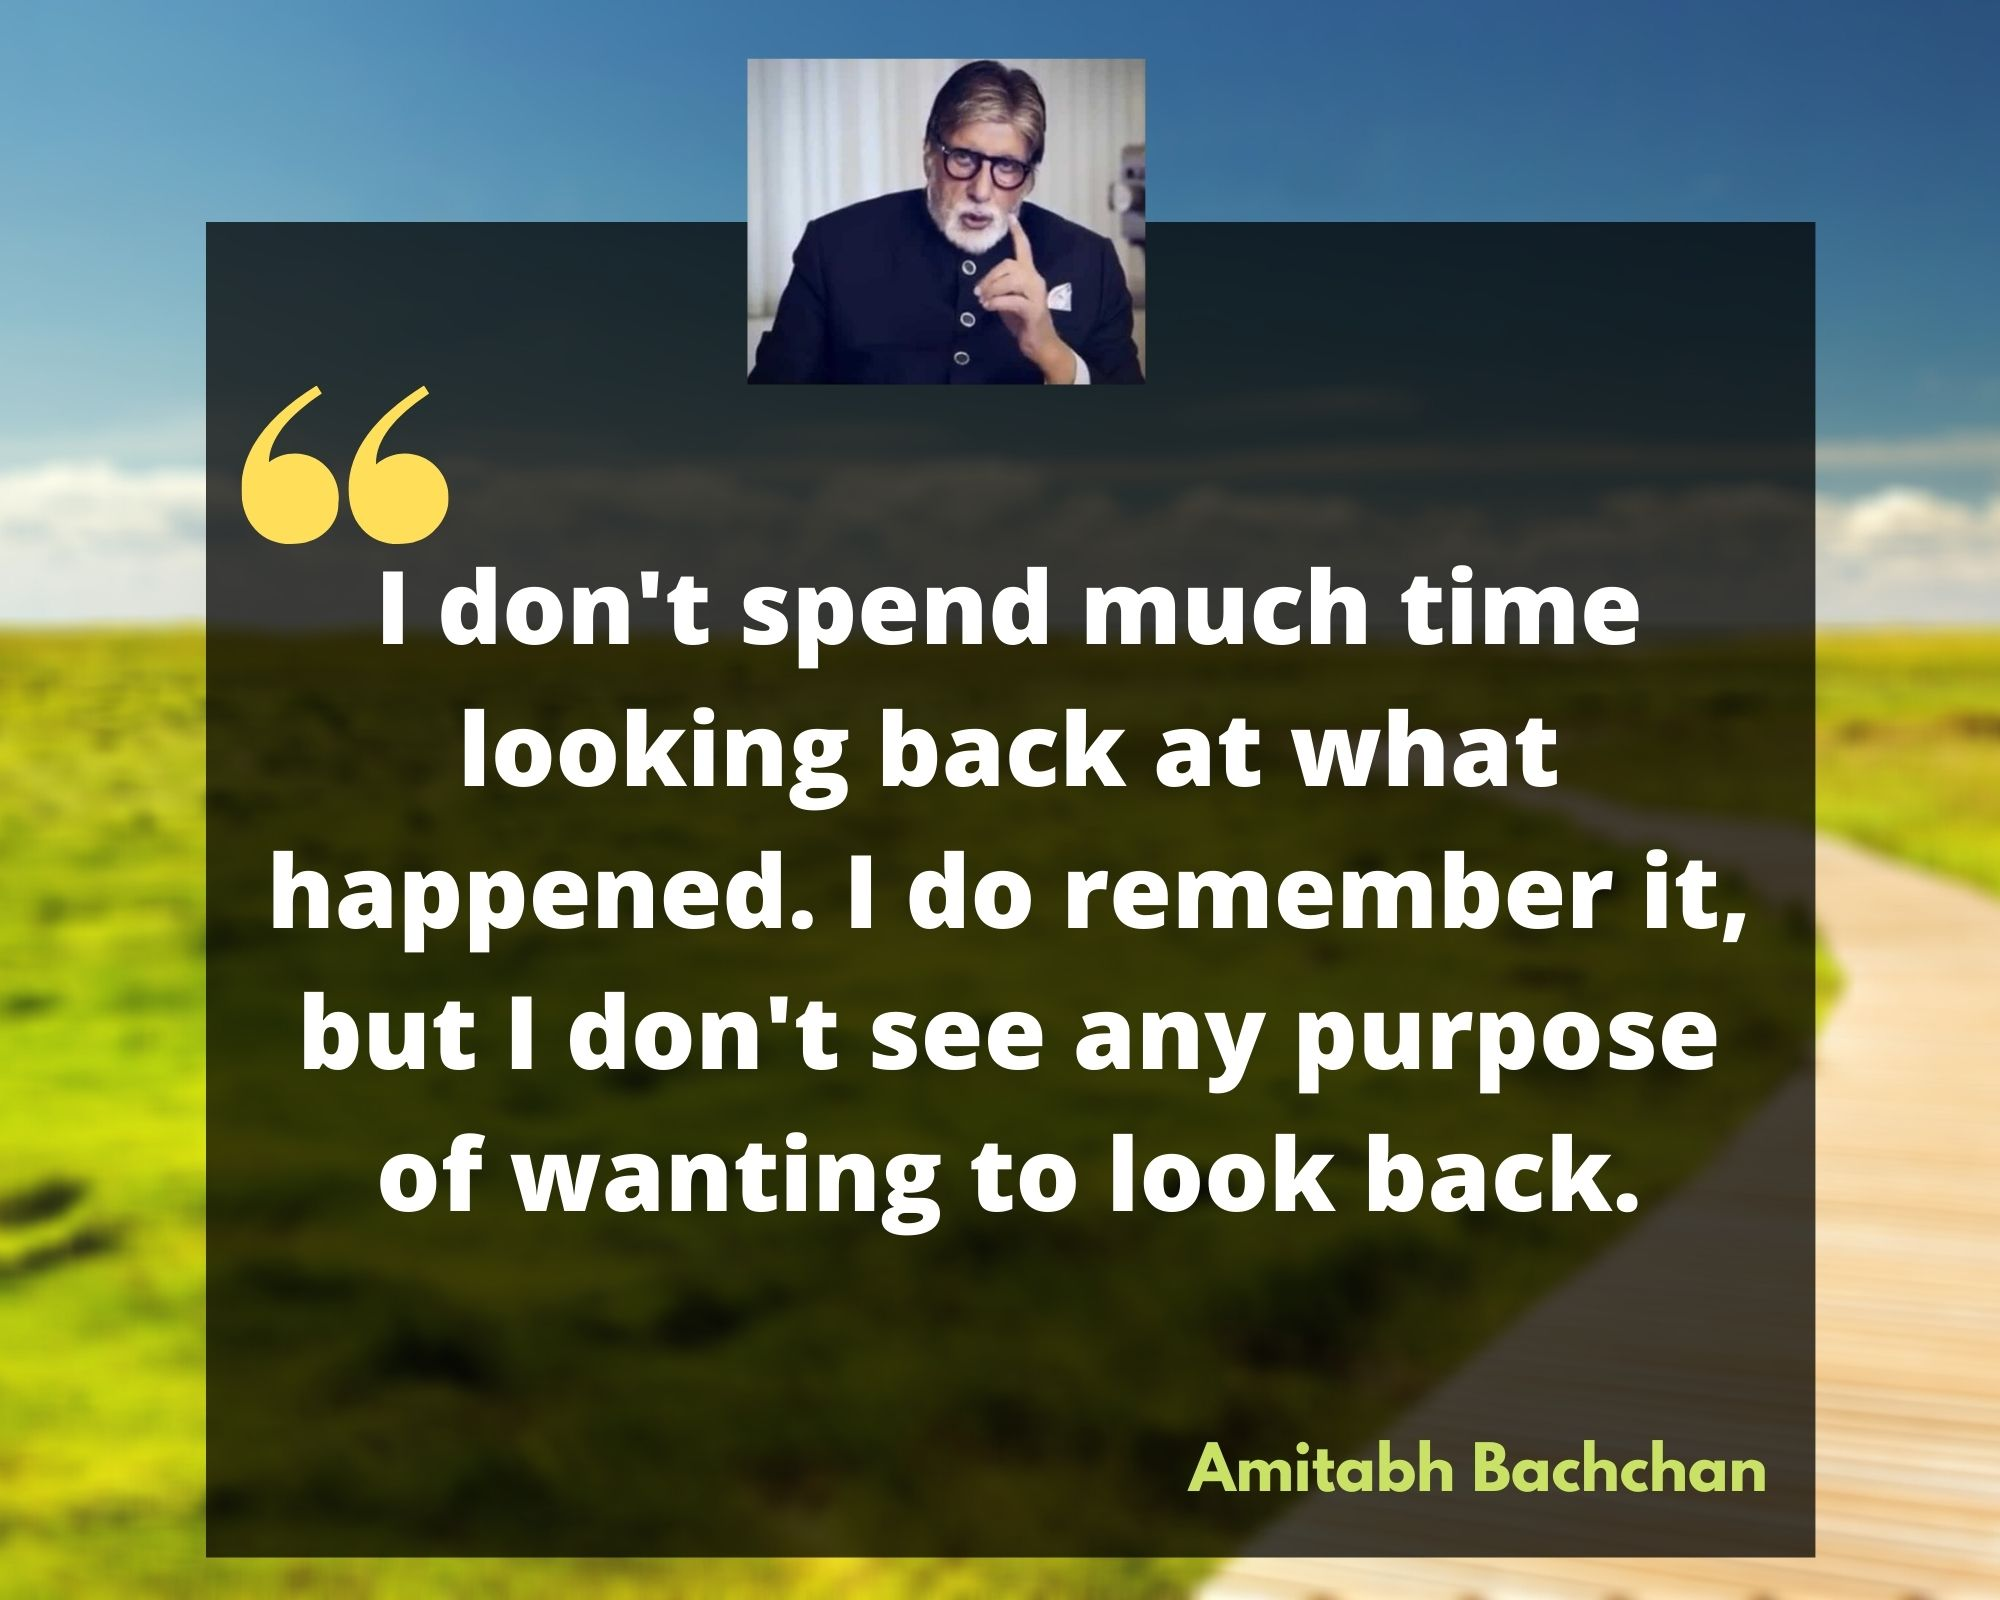 famous quotes of amitabh bachchan